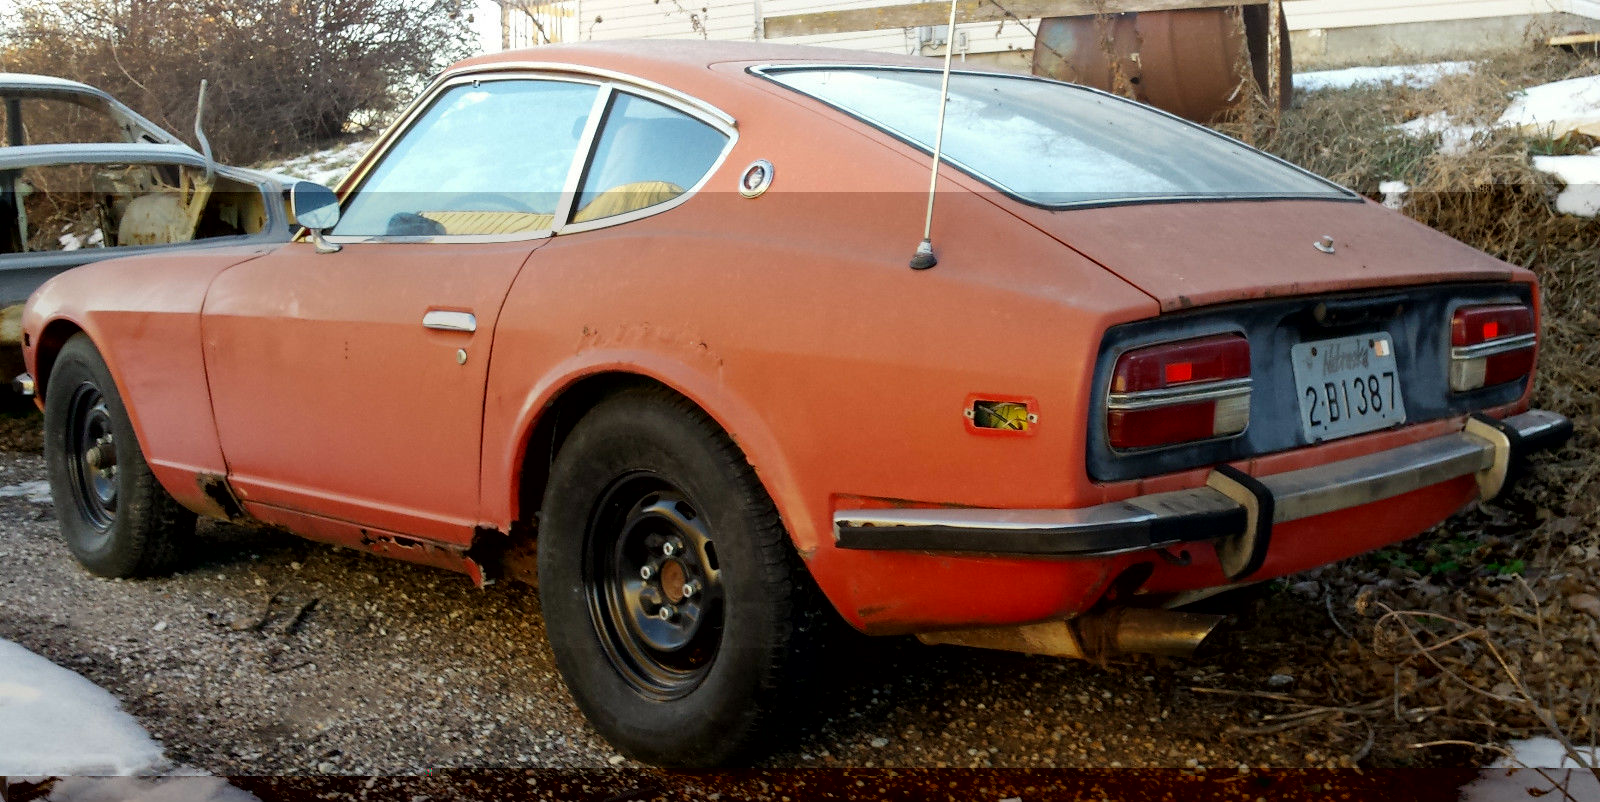 1971 datsun 240 z parts car with clear title for sale in lincoln nebraska united states. Black Bedroom Furniture Sets. Home Design Ideas